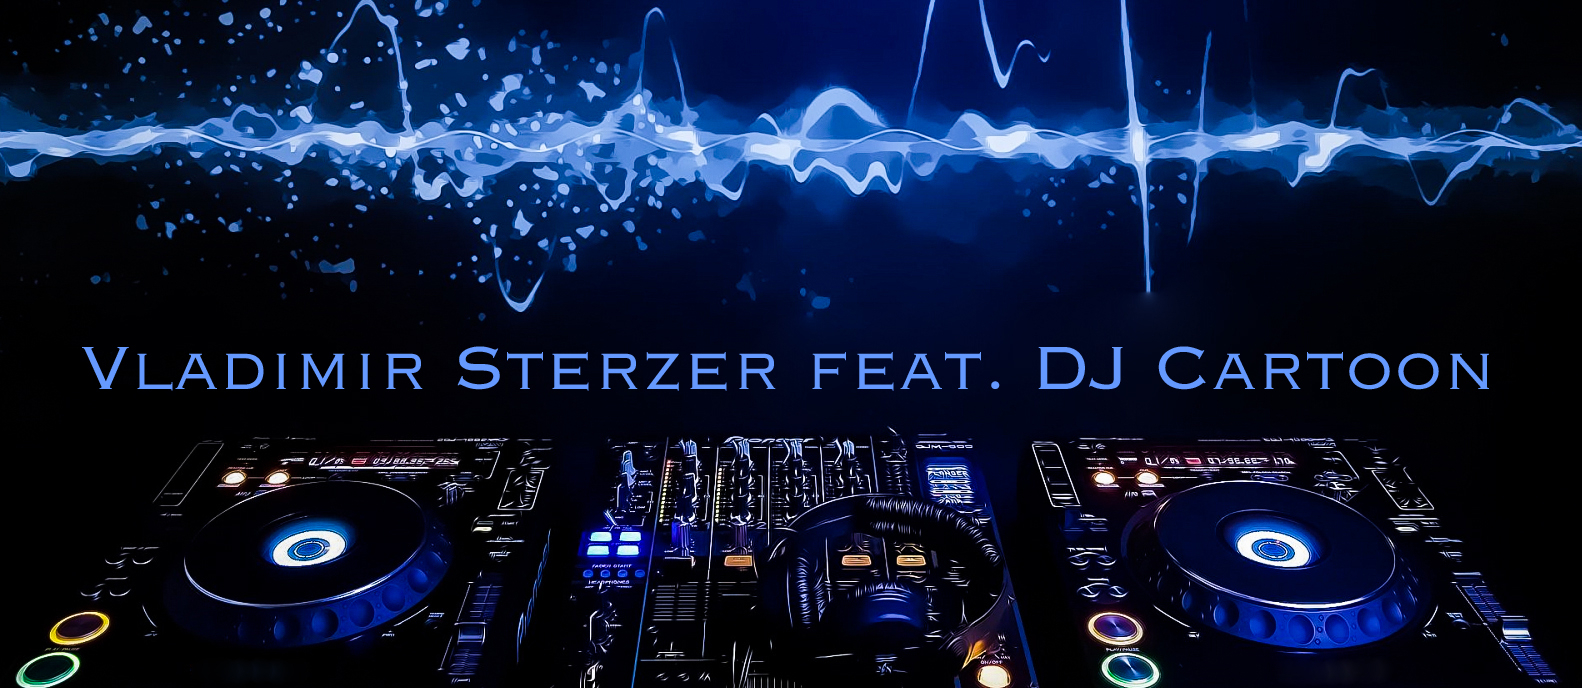 Vladimir Sterzer feat. DJ Cartoon